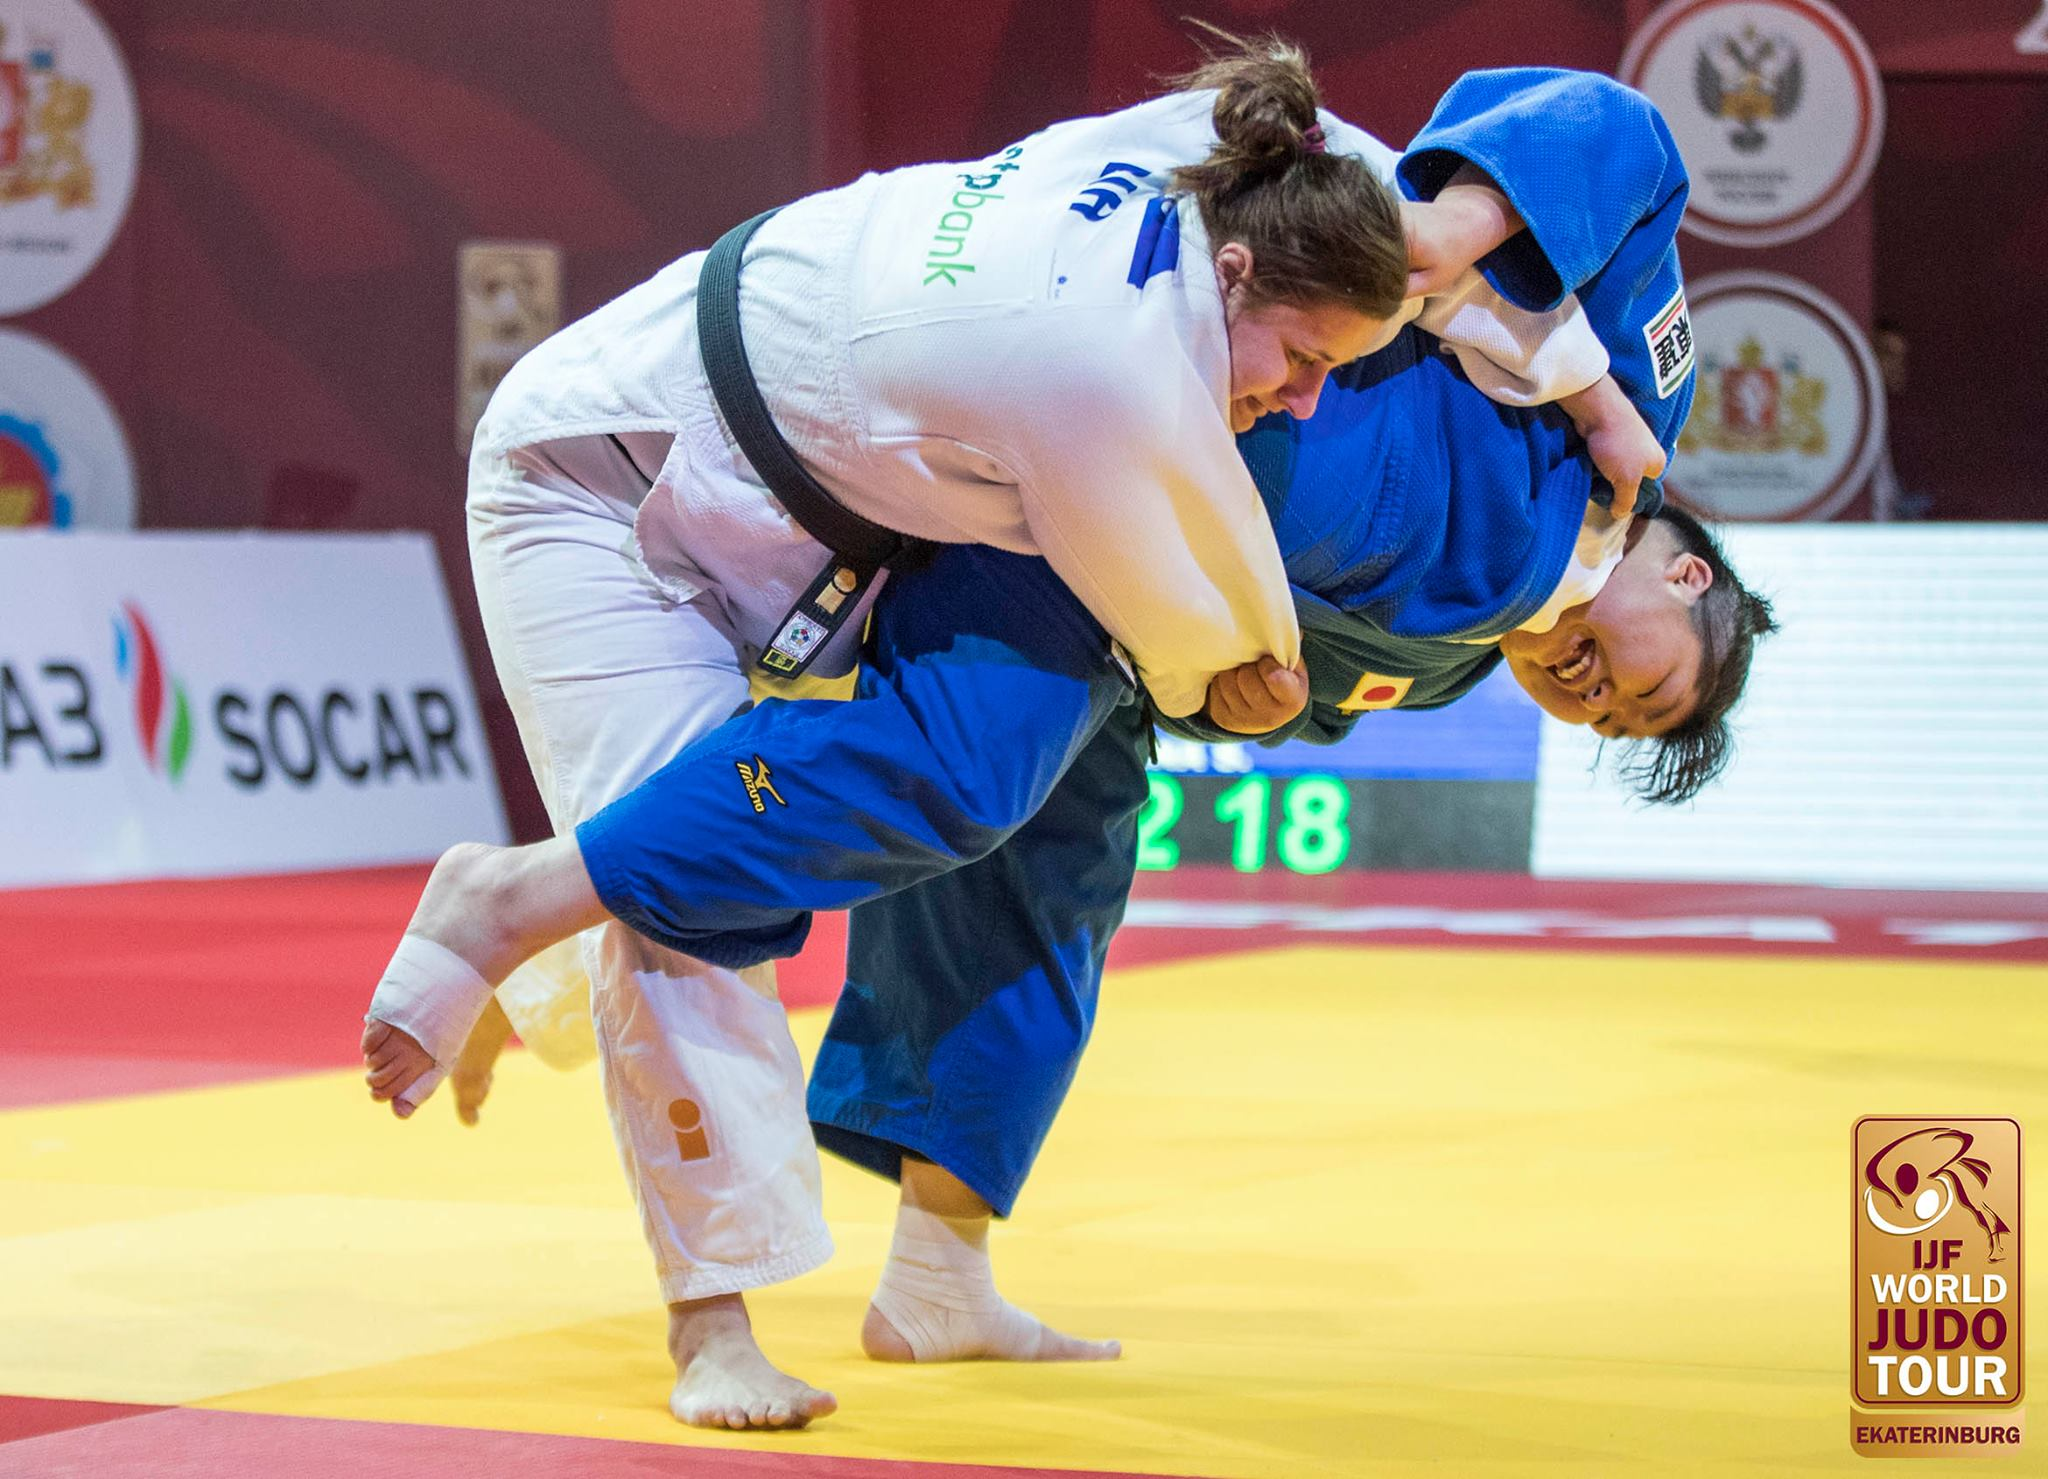 20170521_ijf_actionday2_ekaterinburg_sarah_asahina